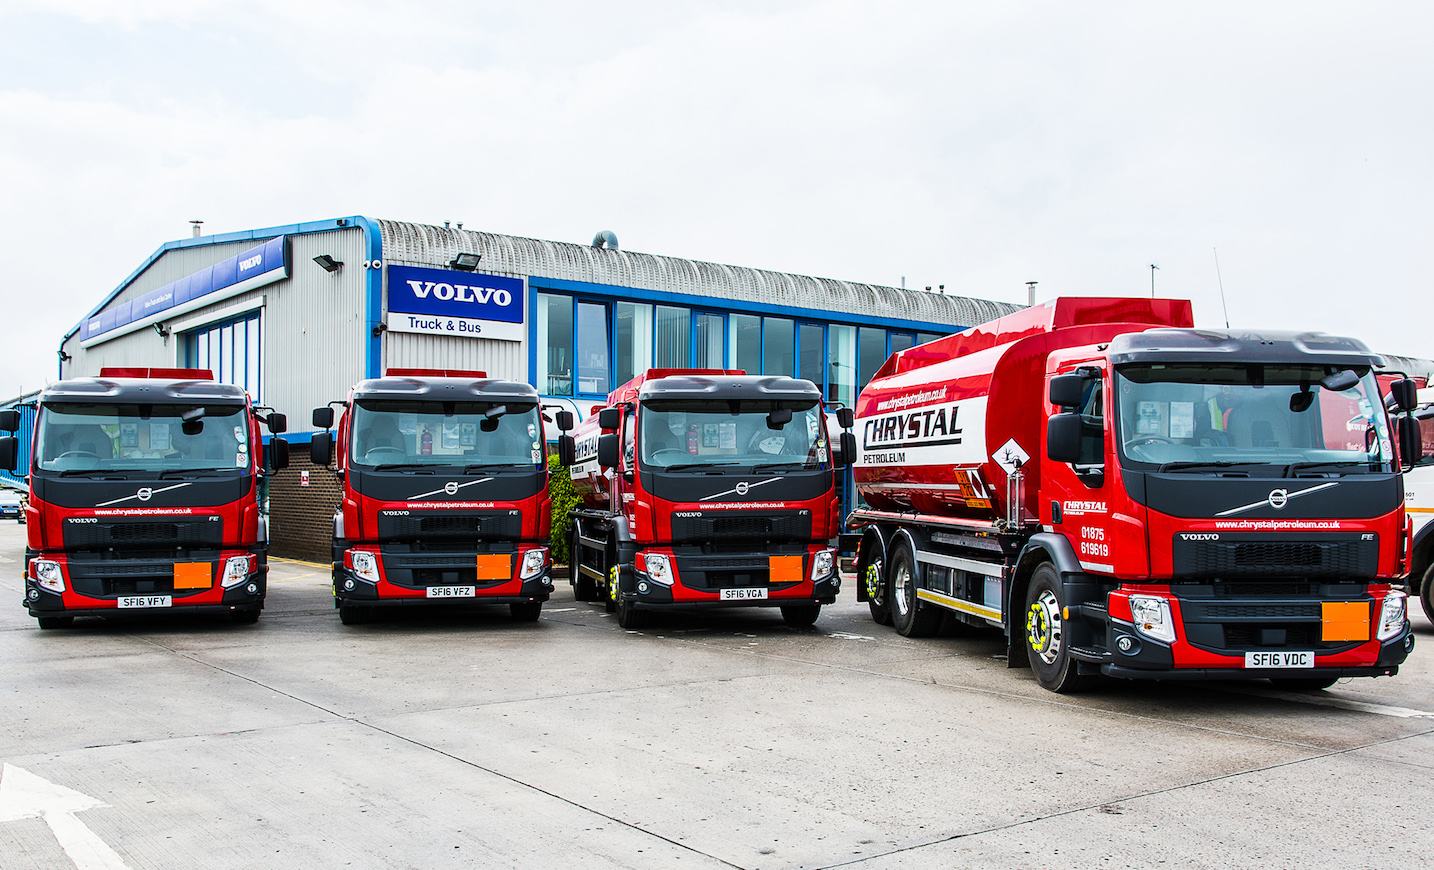 Volvo Fe Tankers With I Shift Strike Gold For Chrystal